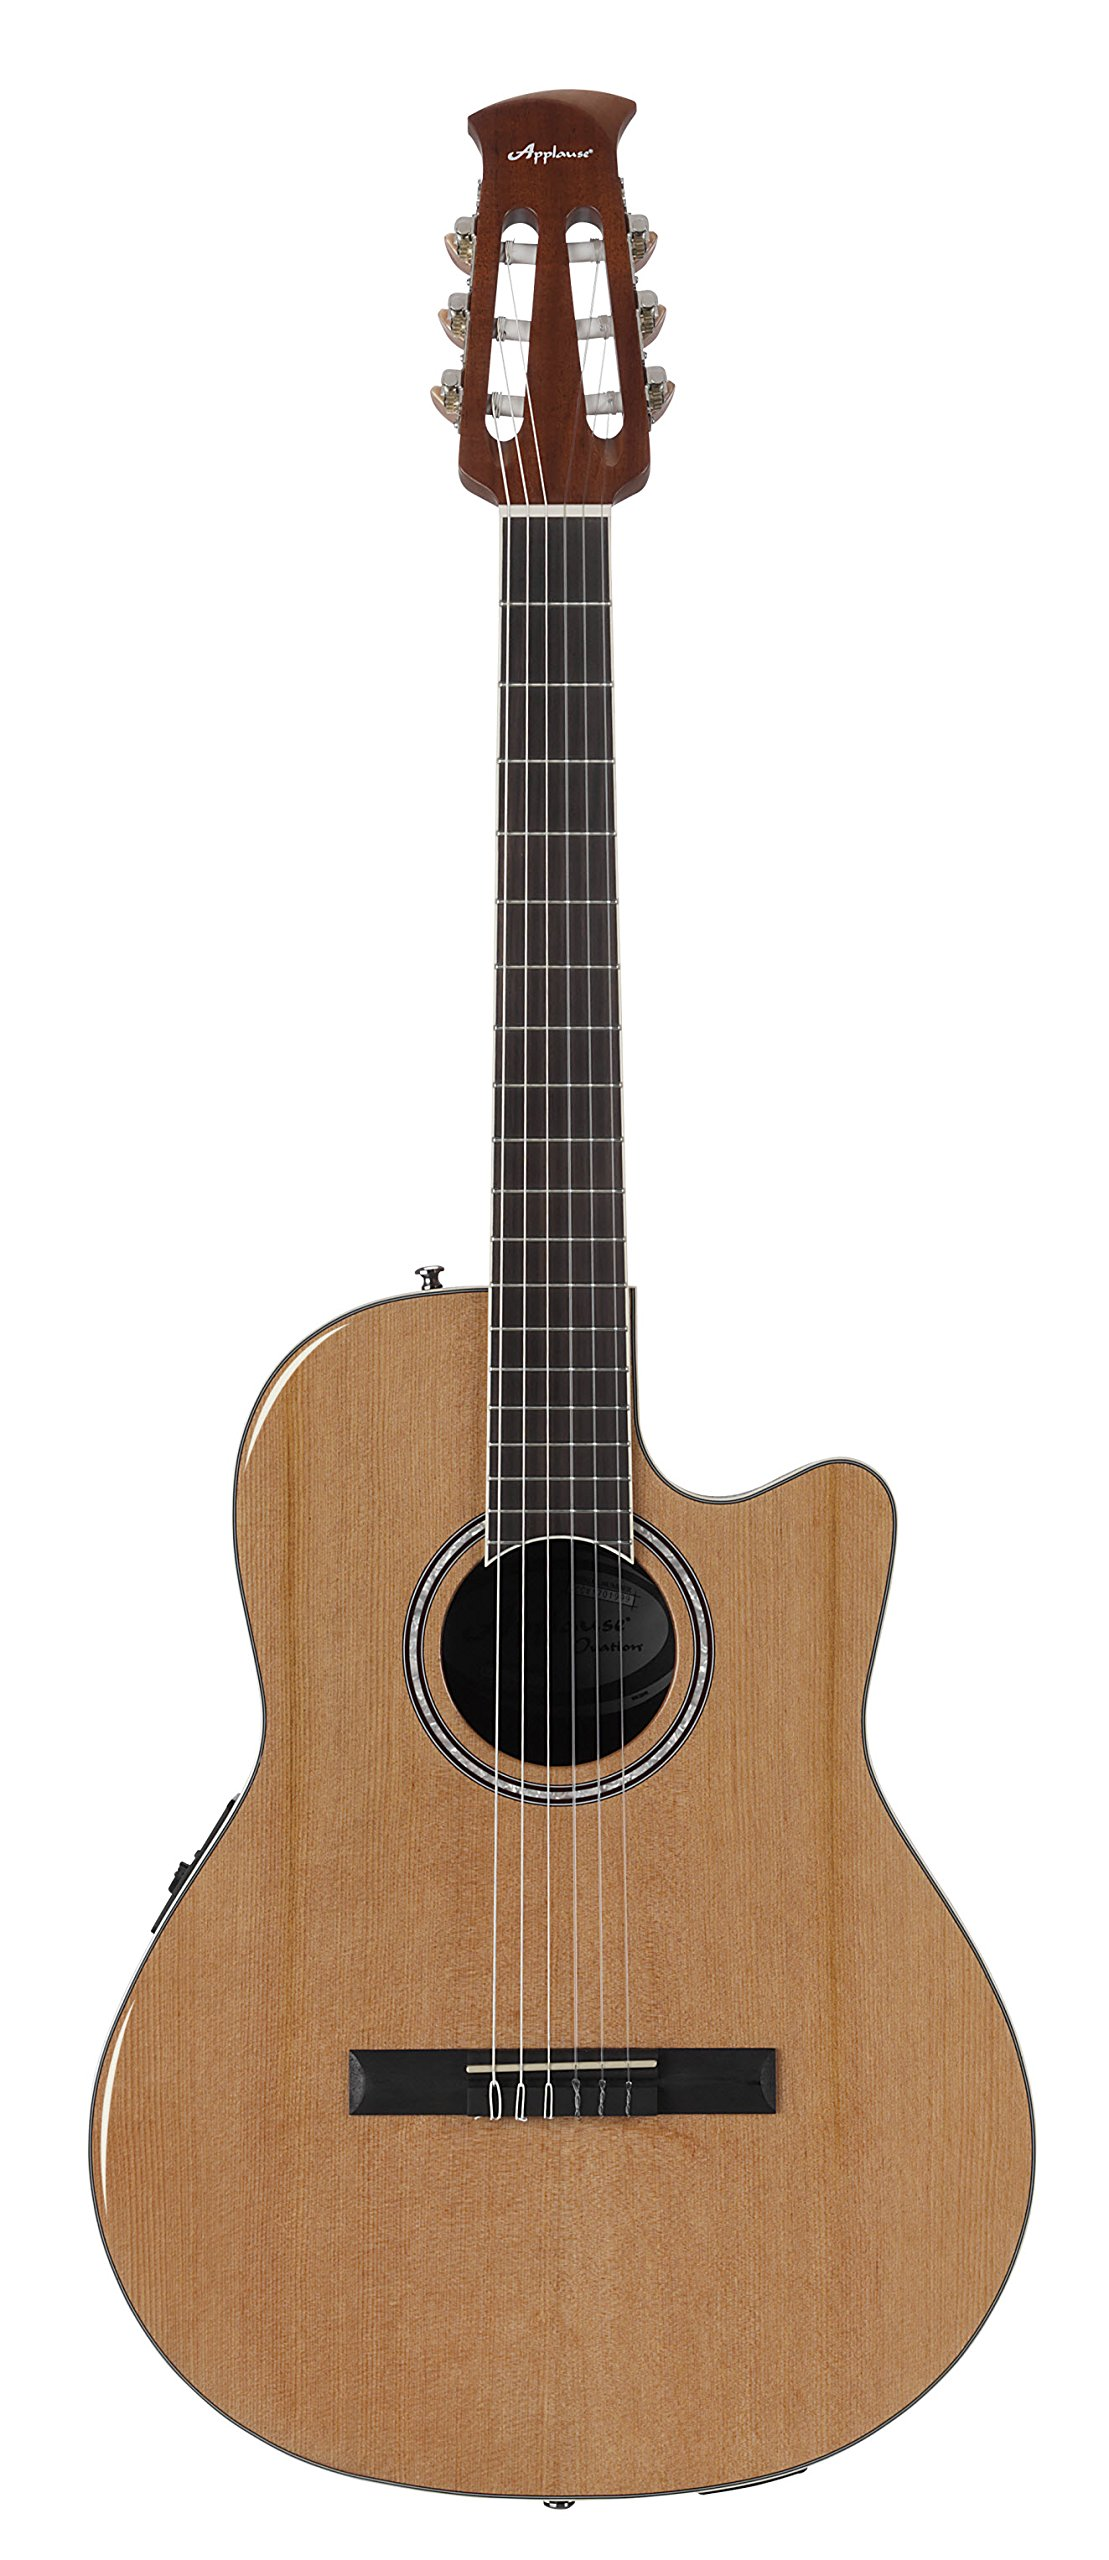 Ovation Cutaway Guitar Applause Balladeer Plus Nylon String Acoustic Electric by Ovation